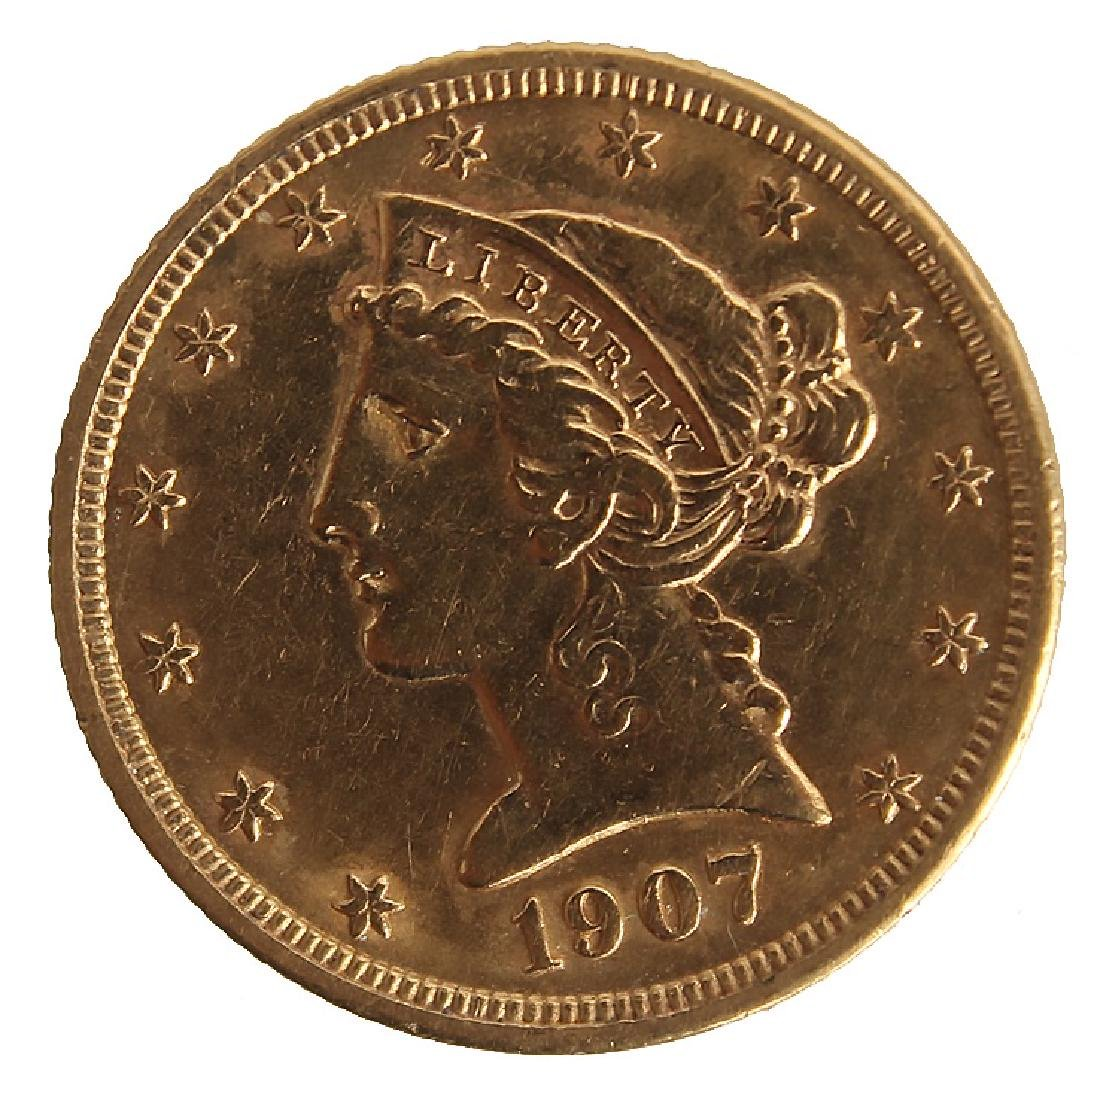 $5.00 UNITED STATES 1907 LIBERTY HEAD GOLD COIN